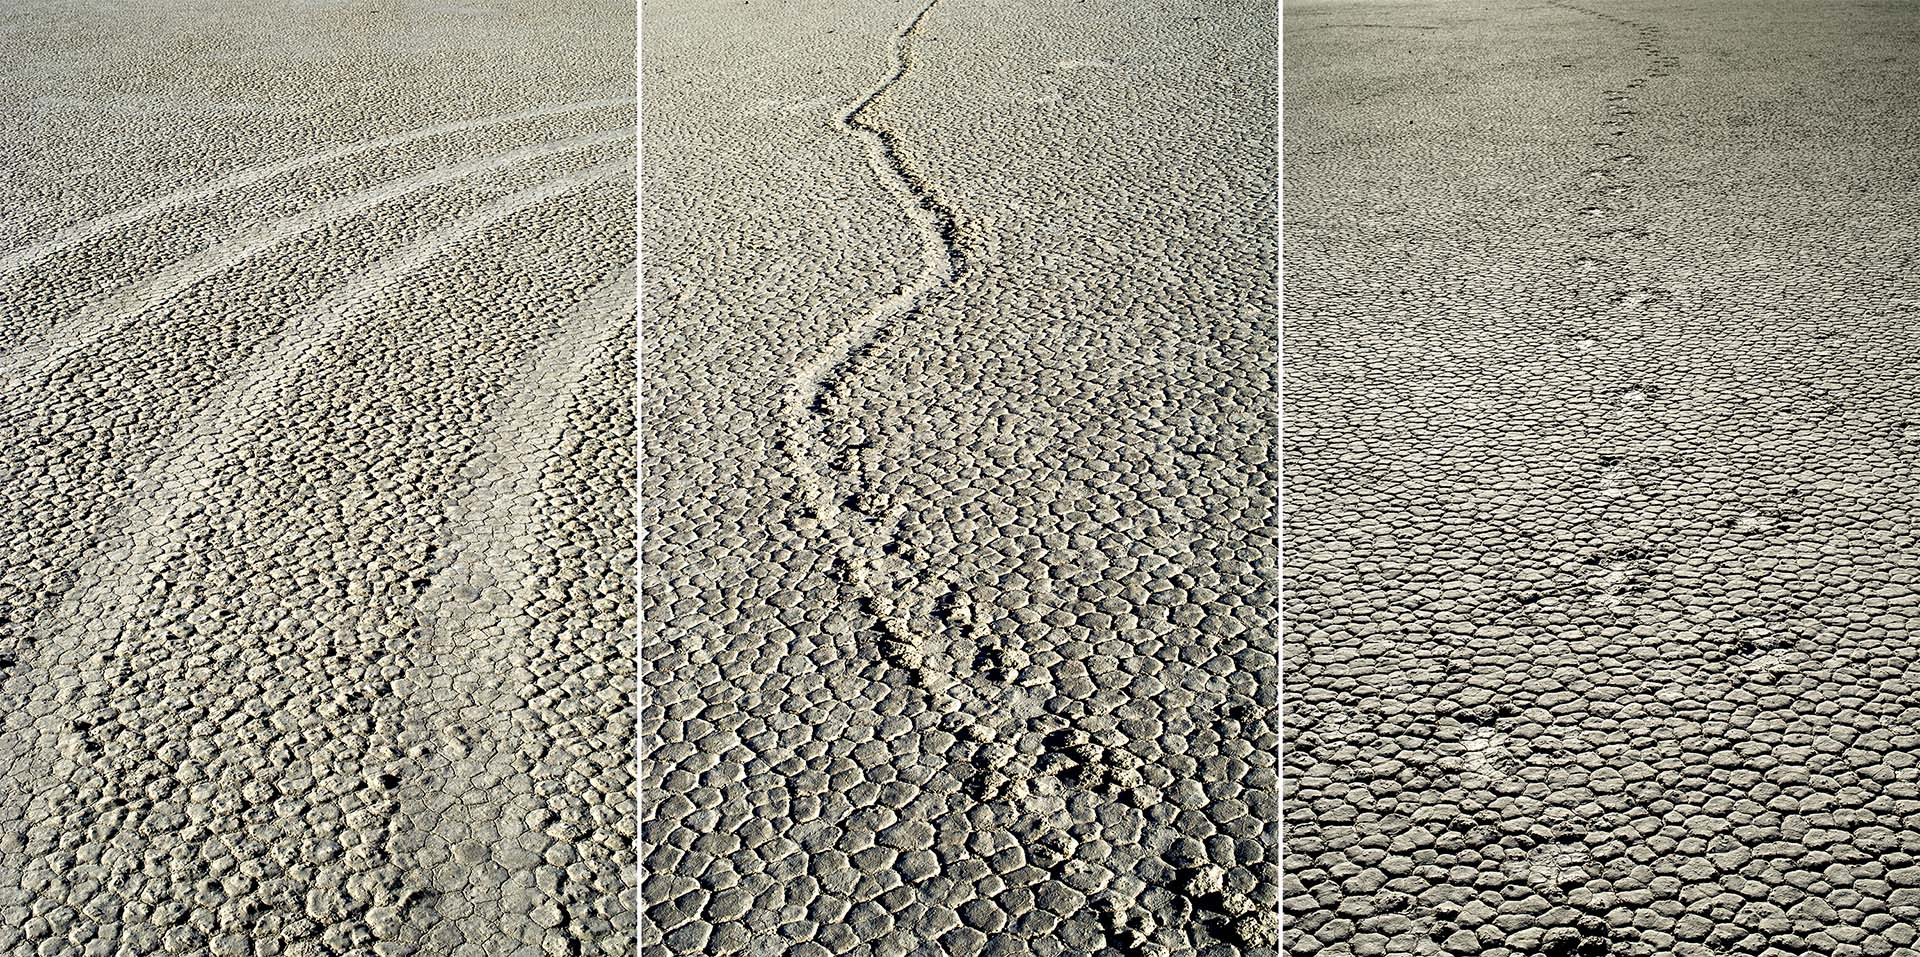 Nancy Floyd, Trinity (tire marks, moving rock trail, footprints)